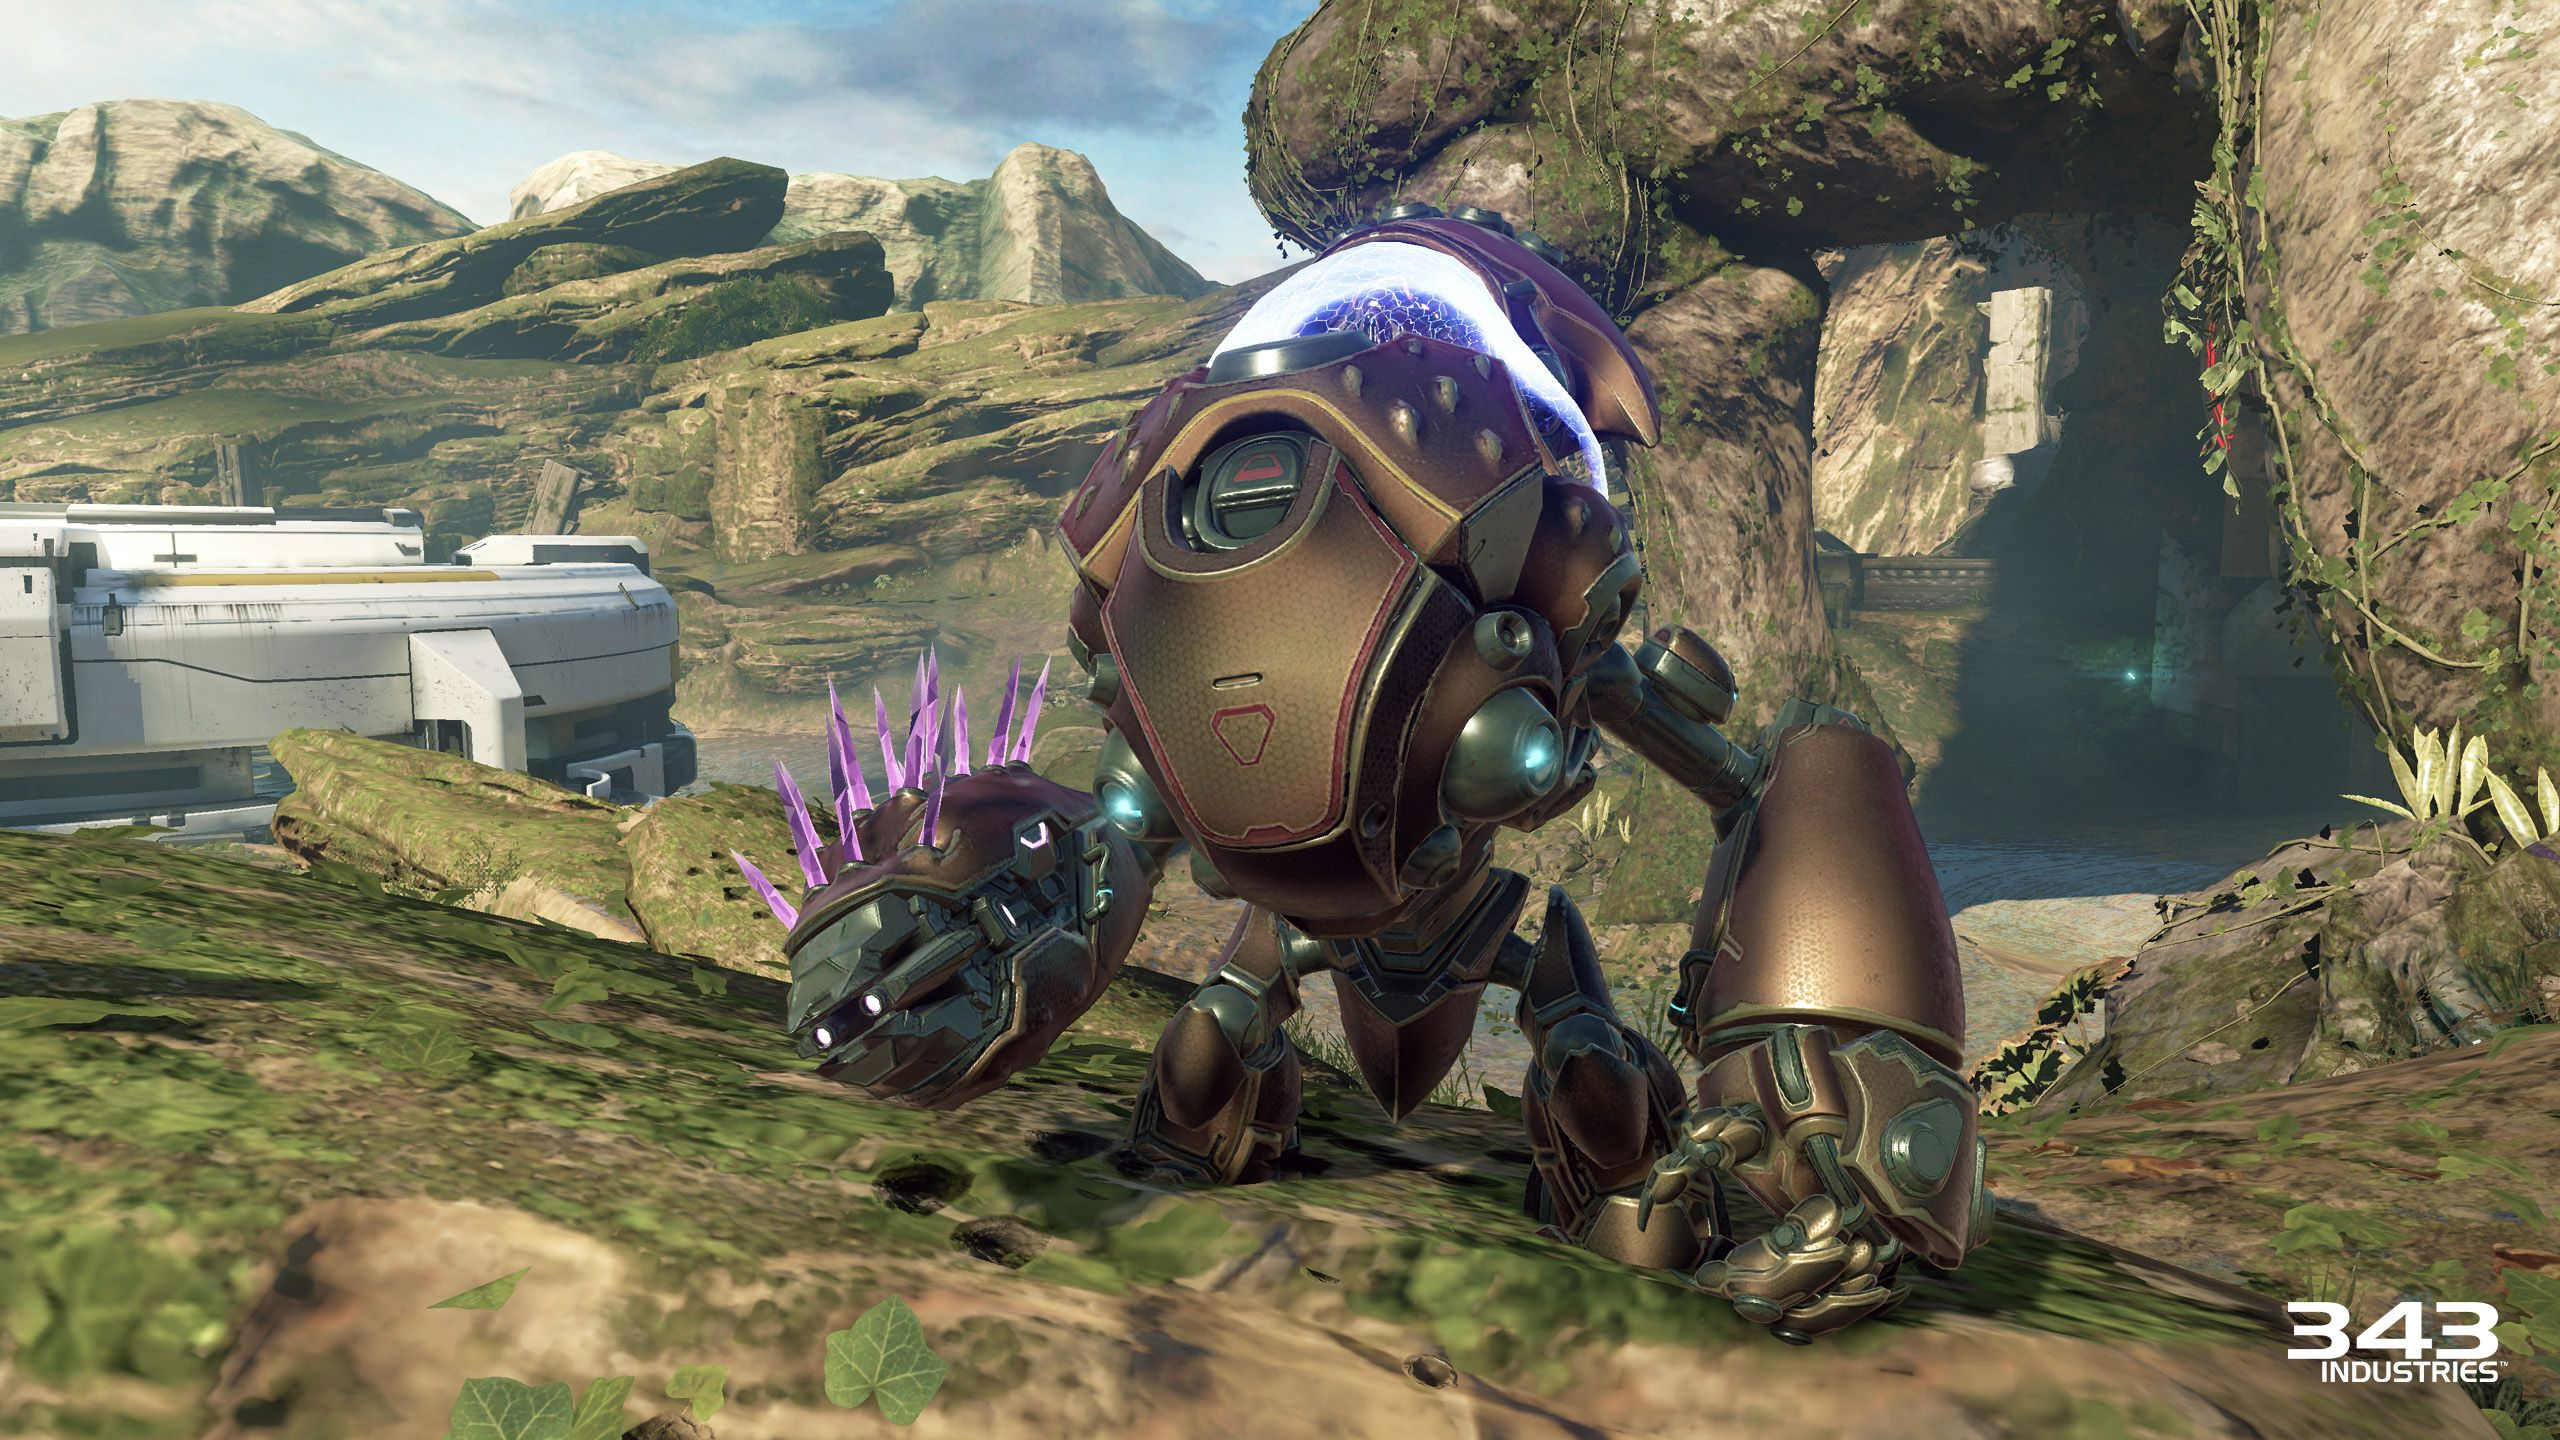 Halo 5 gets all-new Grunt Goblin boss and Spartan Wasp vehicle in